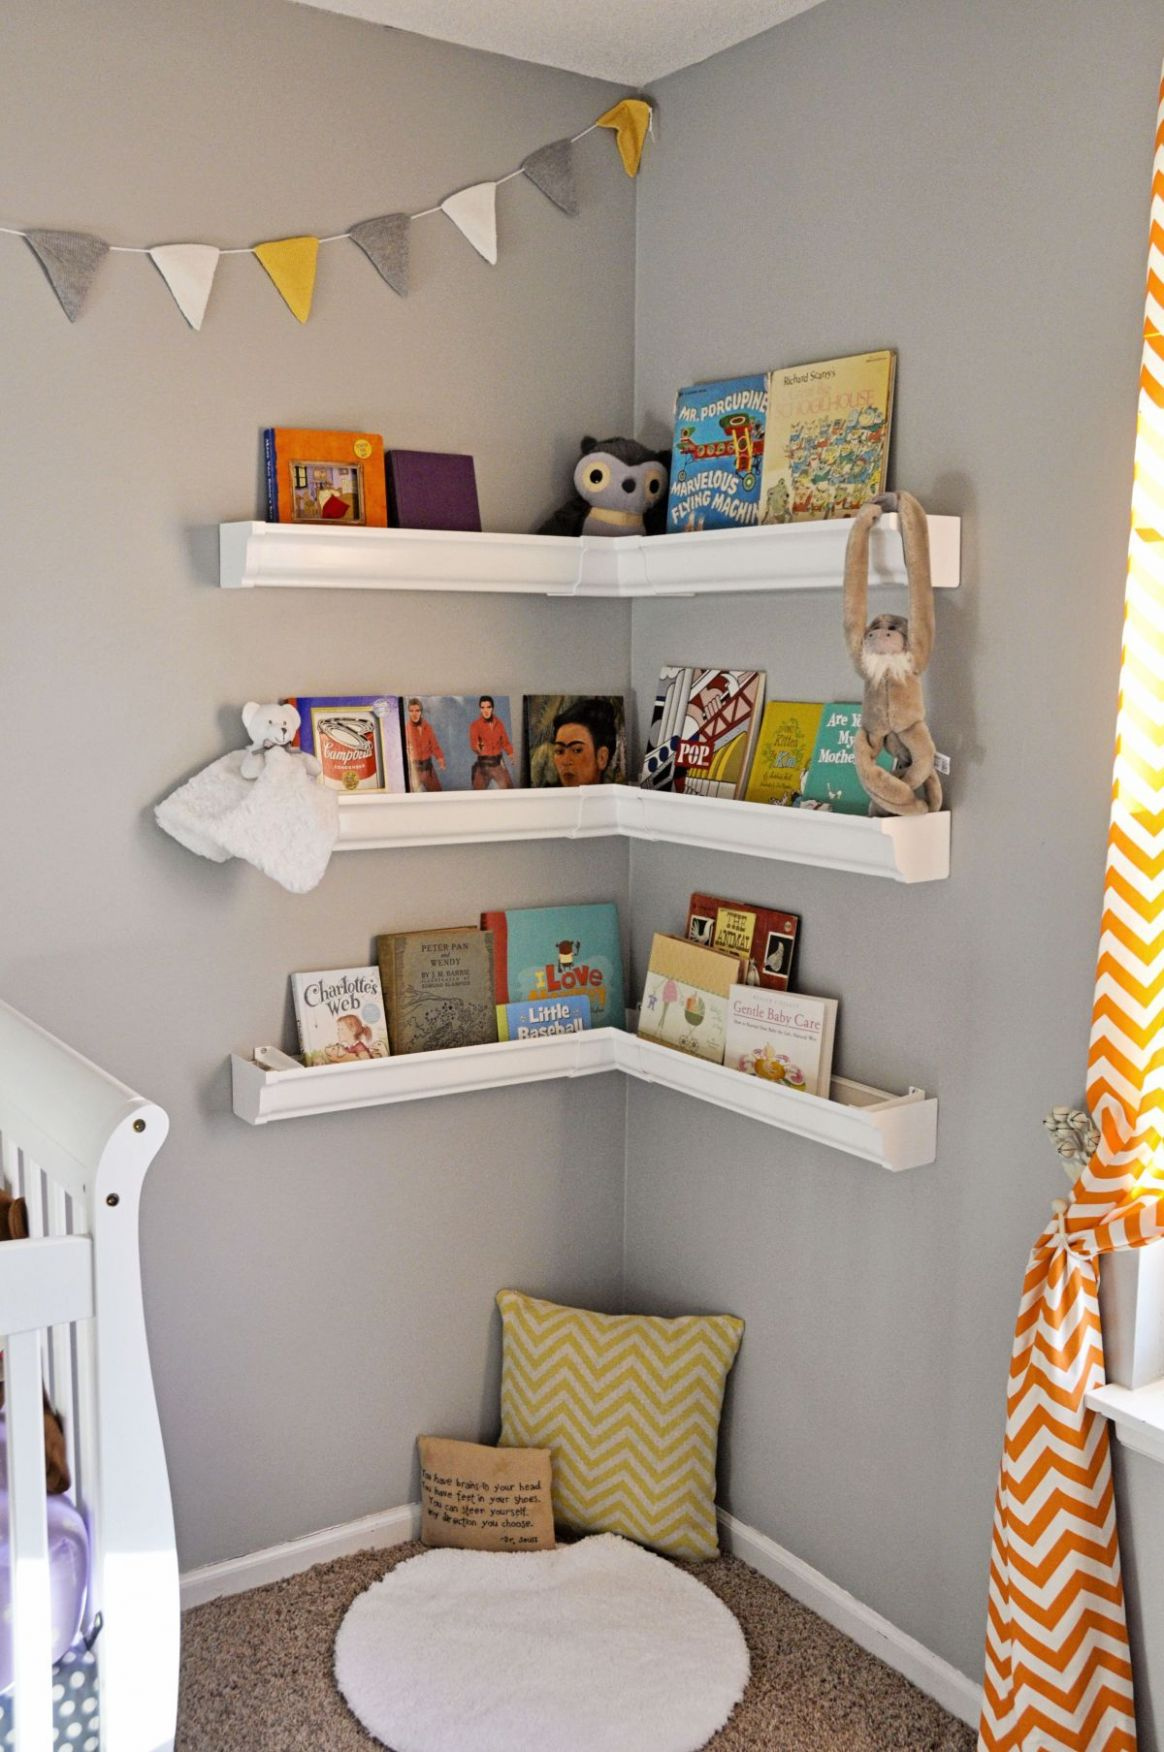 Nursery Bookshelf Ideas With Cute And Playful Designs - baby room bookcase